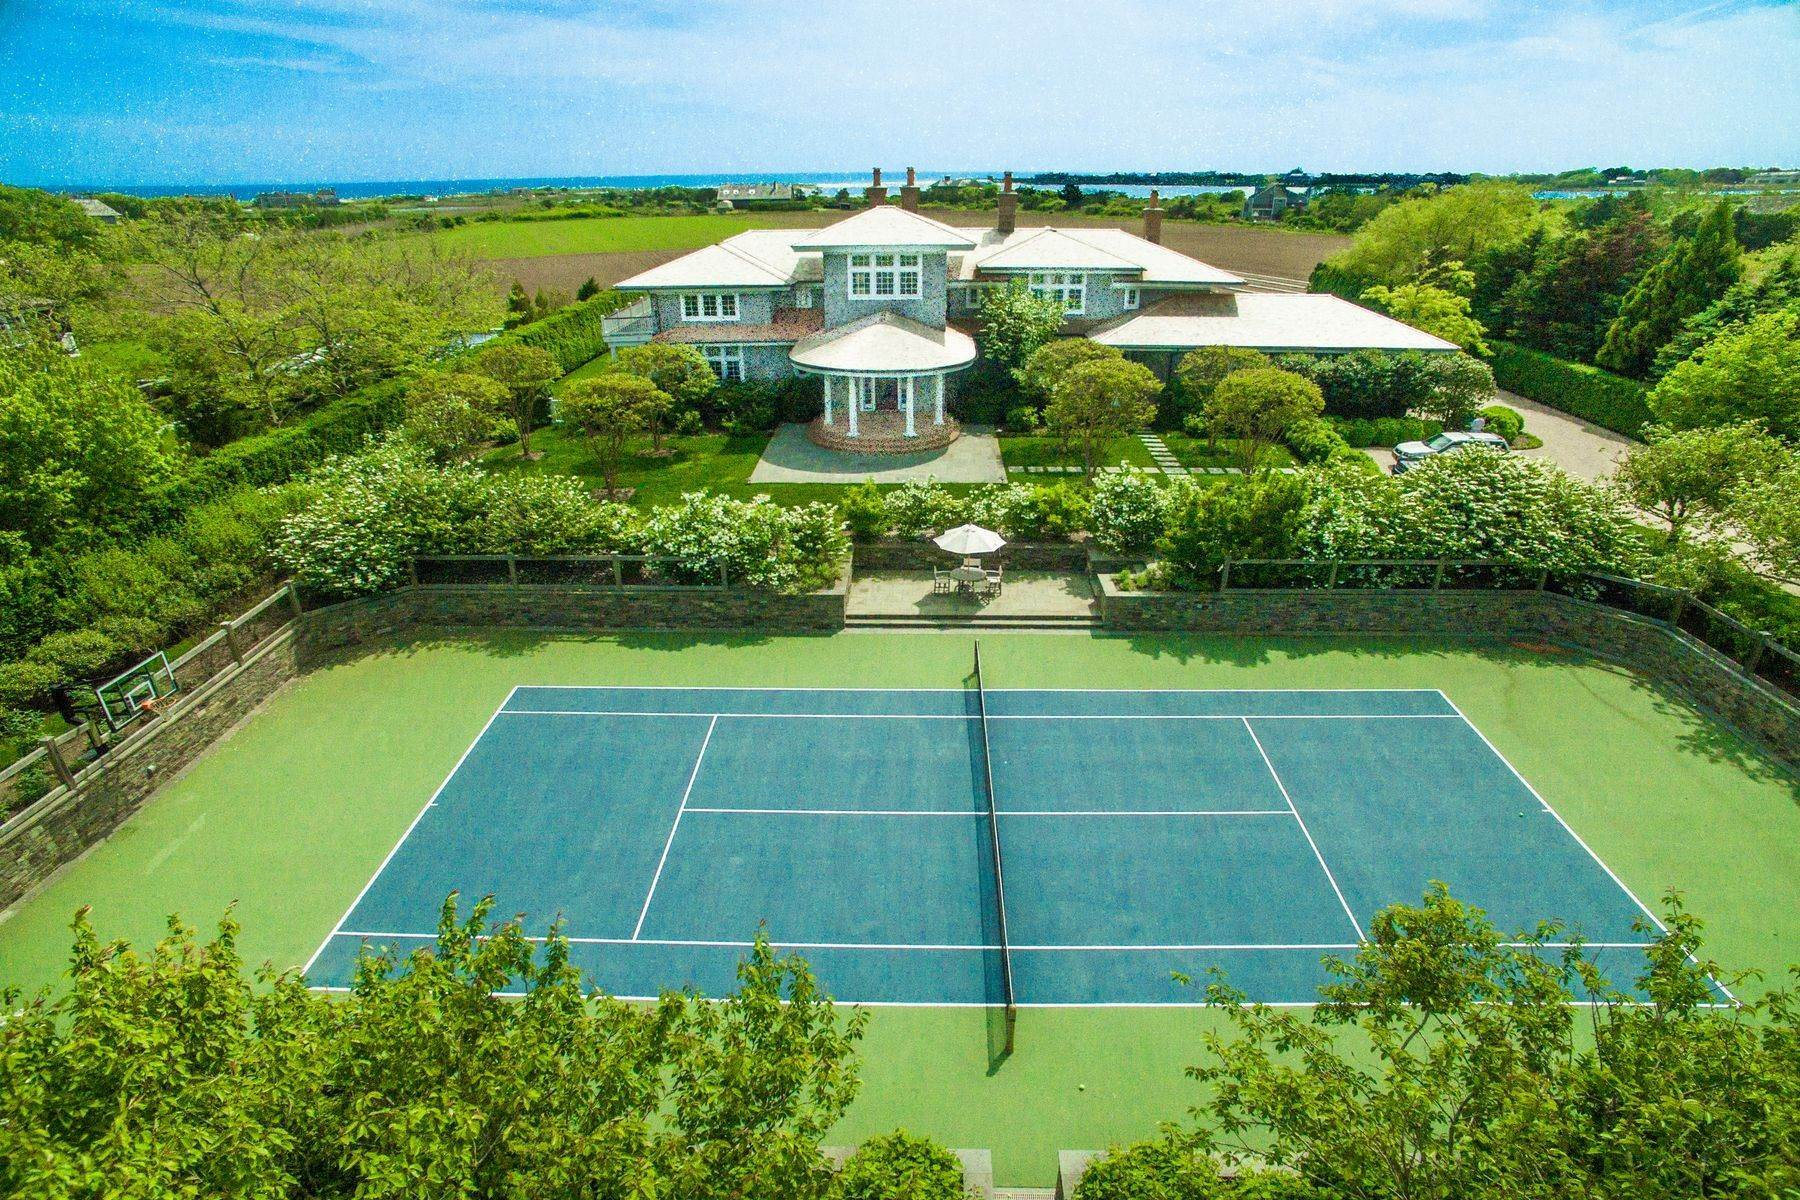 Single Family Homes for Active at Sagg Ocean Views on 23 Acre Reserve 19 Sagg Pond Court Sagaponack, New York 11962 United States